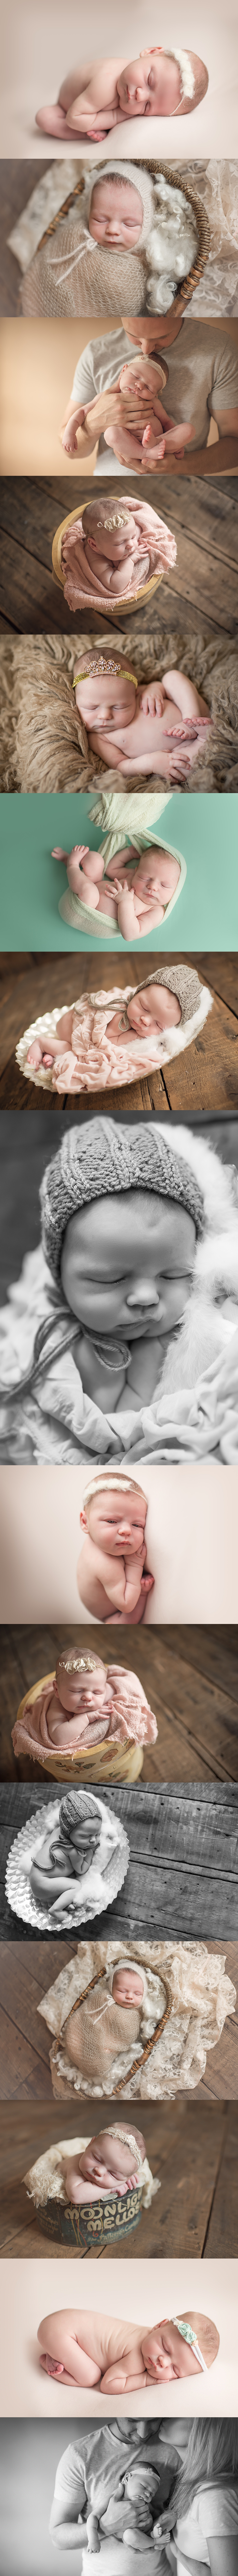 Beautiful Newborns - Photography in Pittsburgh PA. Baby photographer Jules Bradley is Pittsburgh